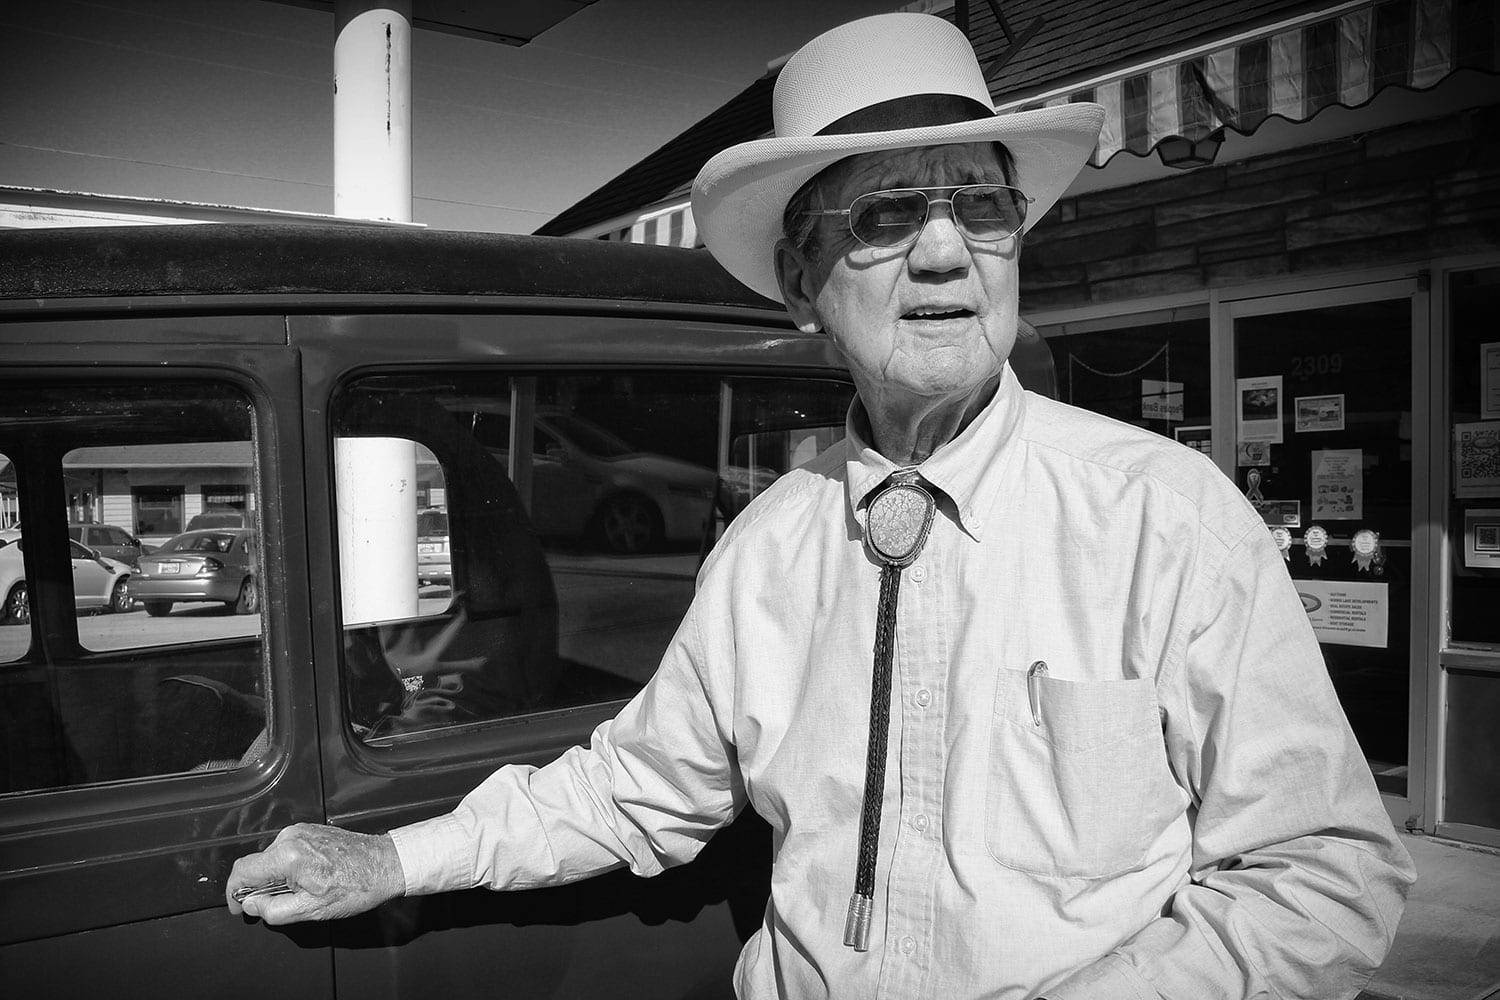 """Iconic LaFollette resident, businessman and auctioneer, """"Hack"""" Ayres has deep roots within Campbell County. He can be spotted around town wearing a tall, white straw hat and driving a bright-yellow truck. photo by Lauren Beets - 2013"""